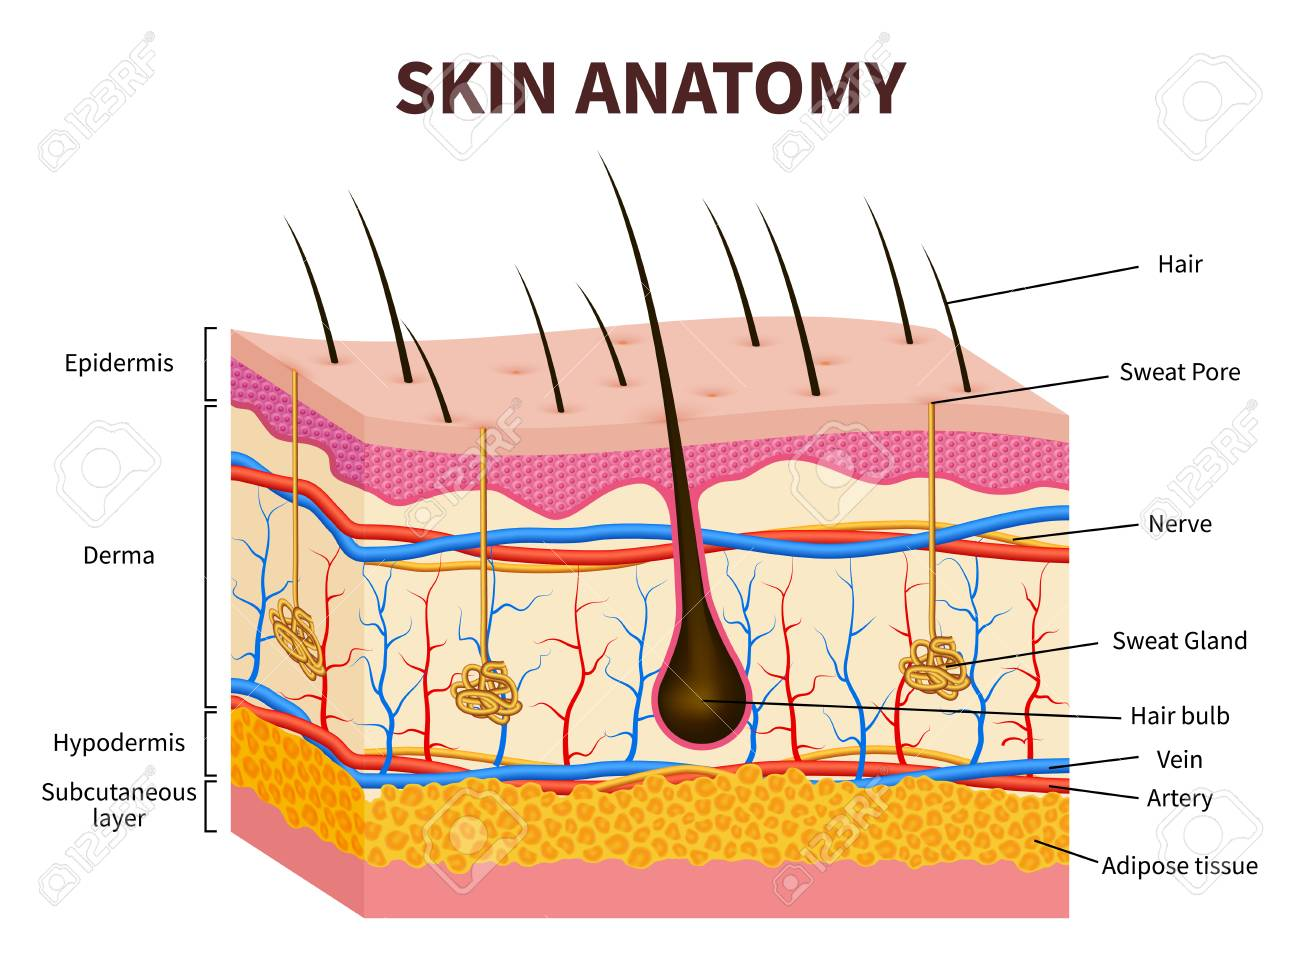 layered epidermis with hair follicle, sweat and sebaceous glands  healthy  skin